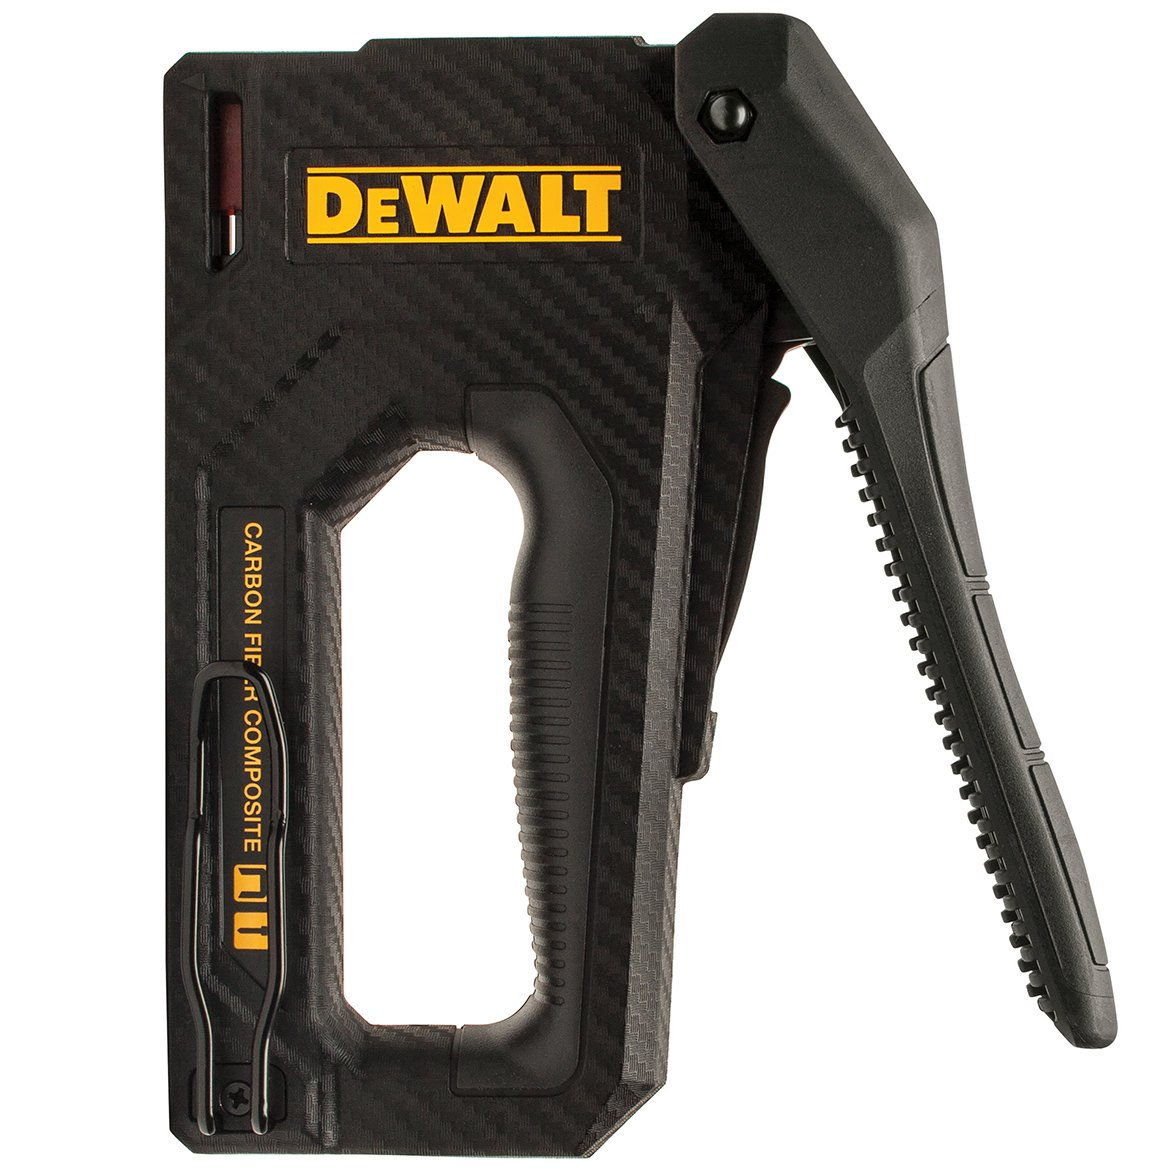 DeWalt DWHT80276 Carbon Fiber Composite Staple and Brad Gun